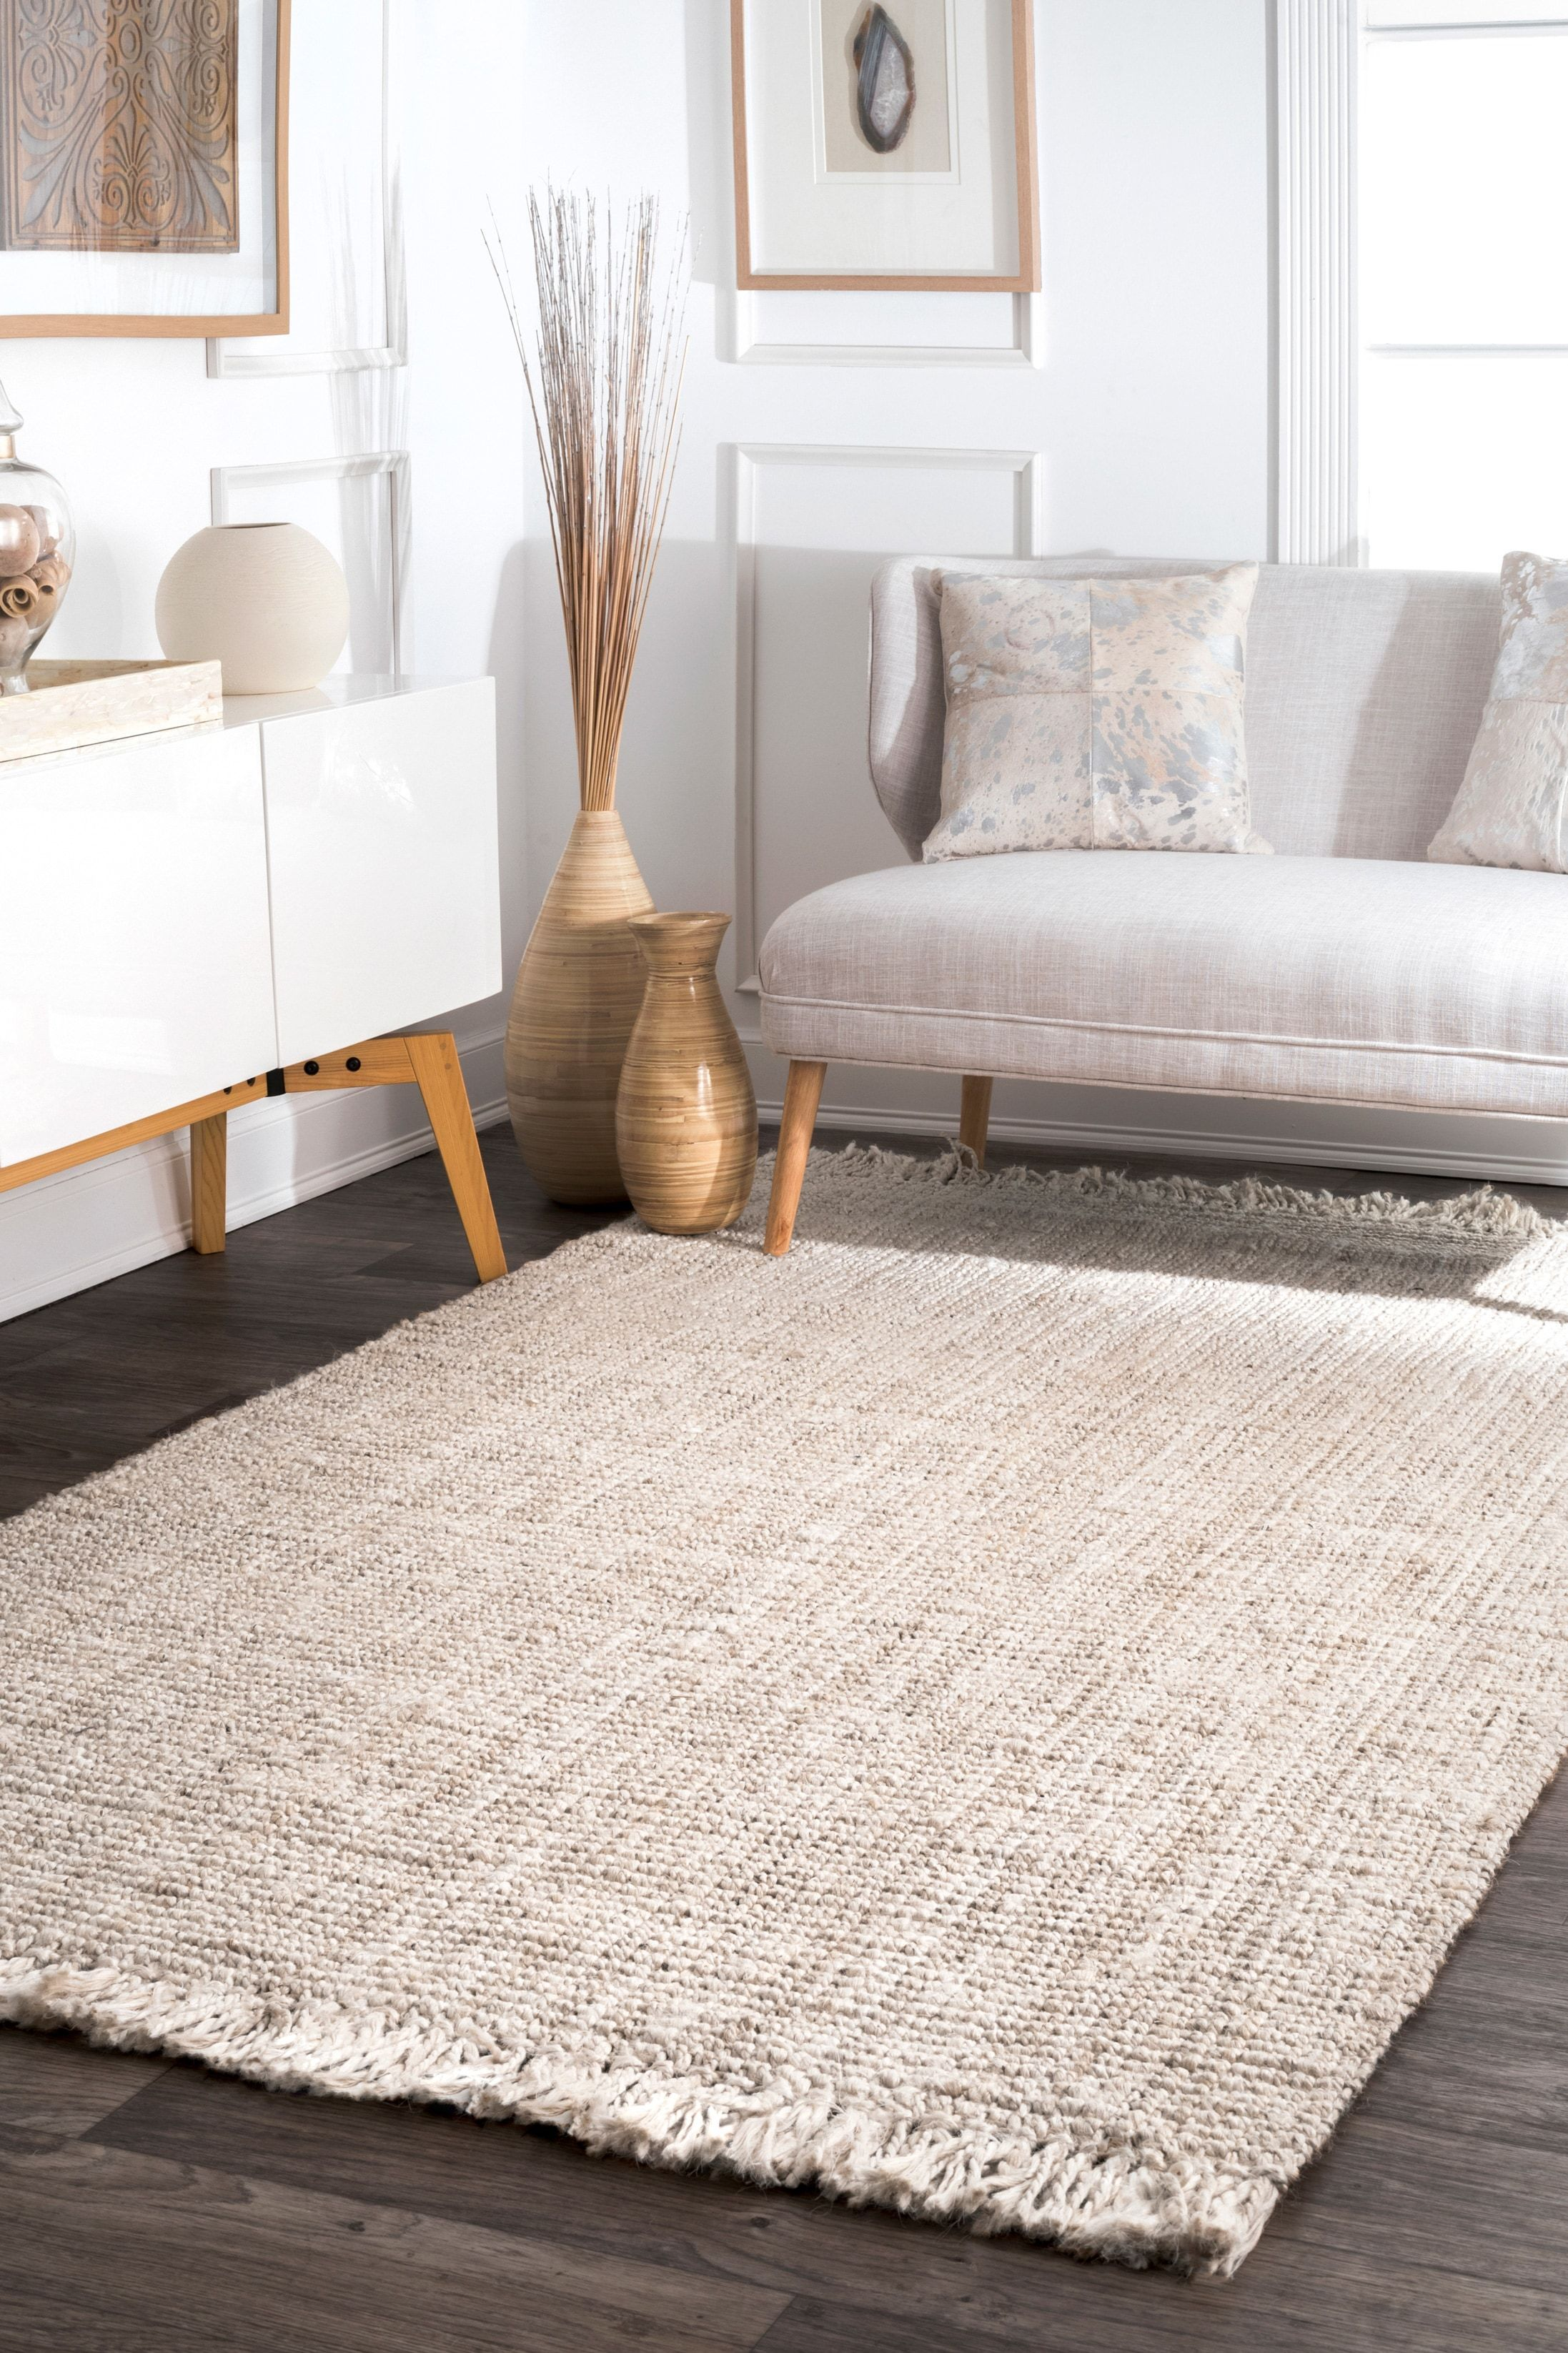 Eco Friendly Organic And Made Of 100 Percent Jute These Rugs Give A Rustic Earthy Feel To Your Surroundi Rugs In Living Room Jute Rug Living Room Rustic Rugs